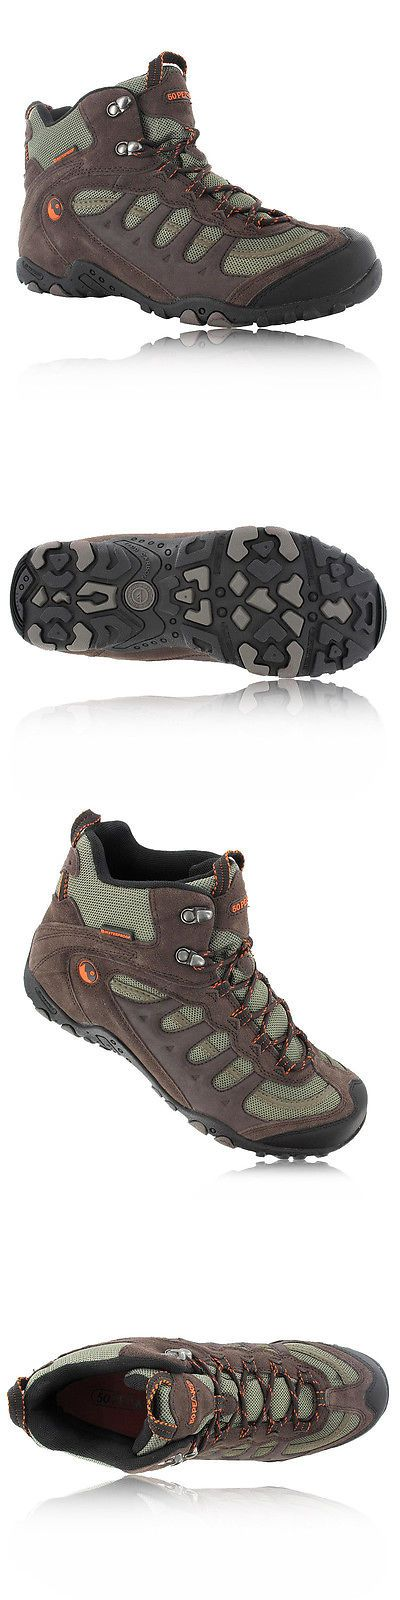 Other Camping Hiking Clothing 27362: Hi-Tec Mens Penrith Brown Mid Waterproof Trail Hiking Walking Boots Shoes New -> BUY IT NOW ONLY: $45.21 on eBay!